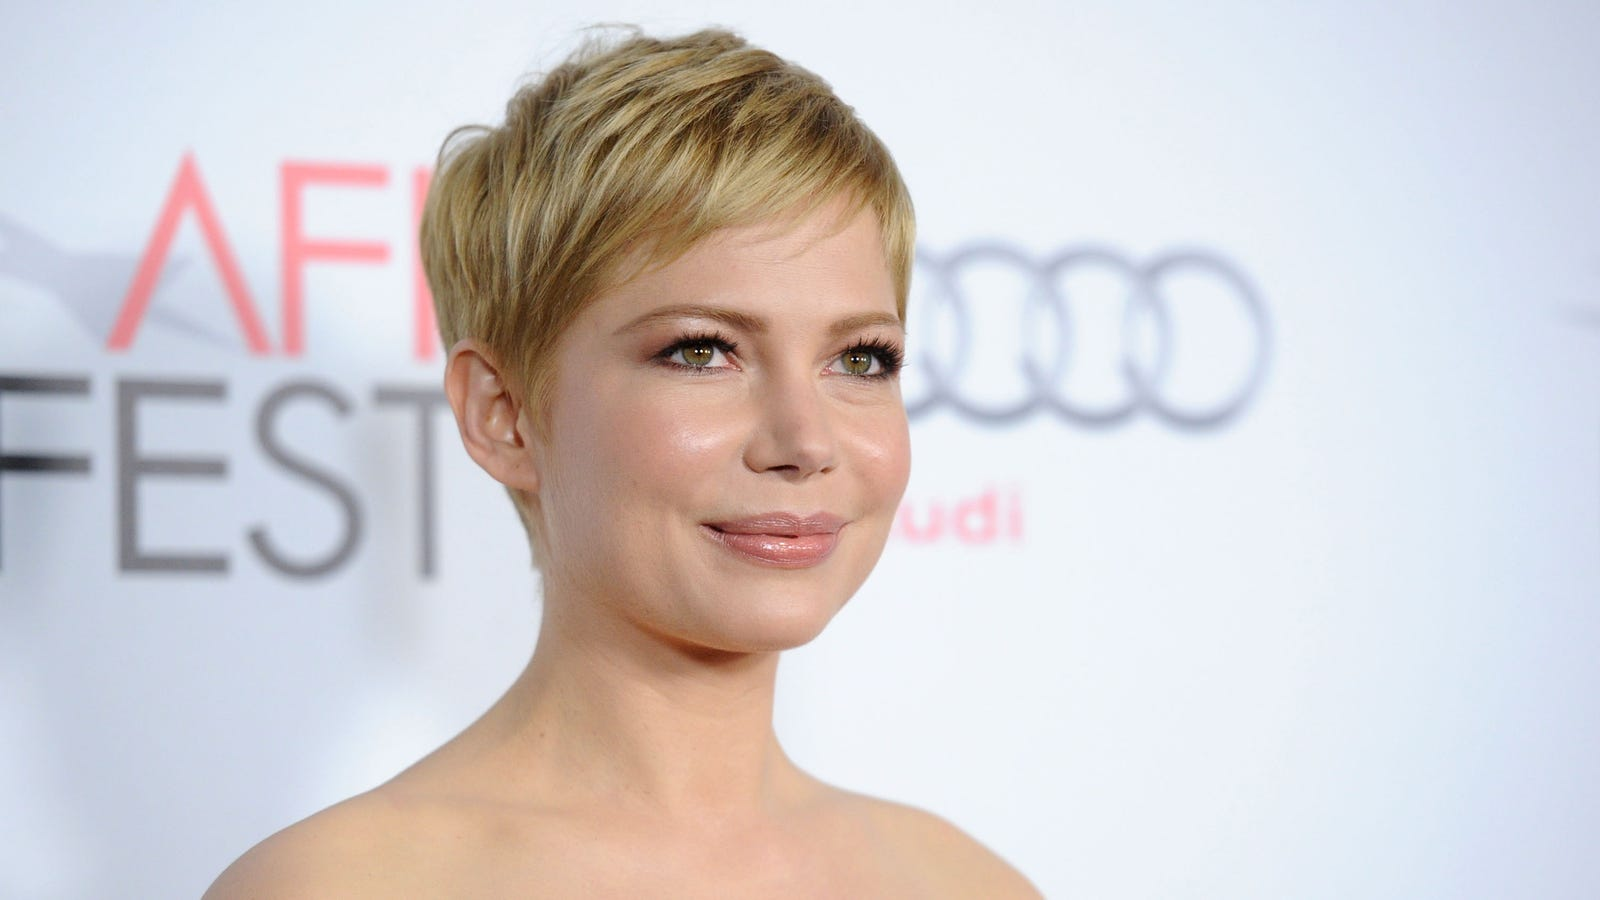 In Defense Of The Short-Haired Woman